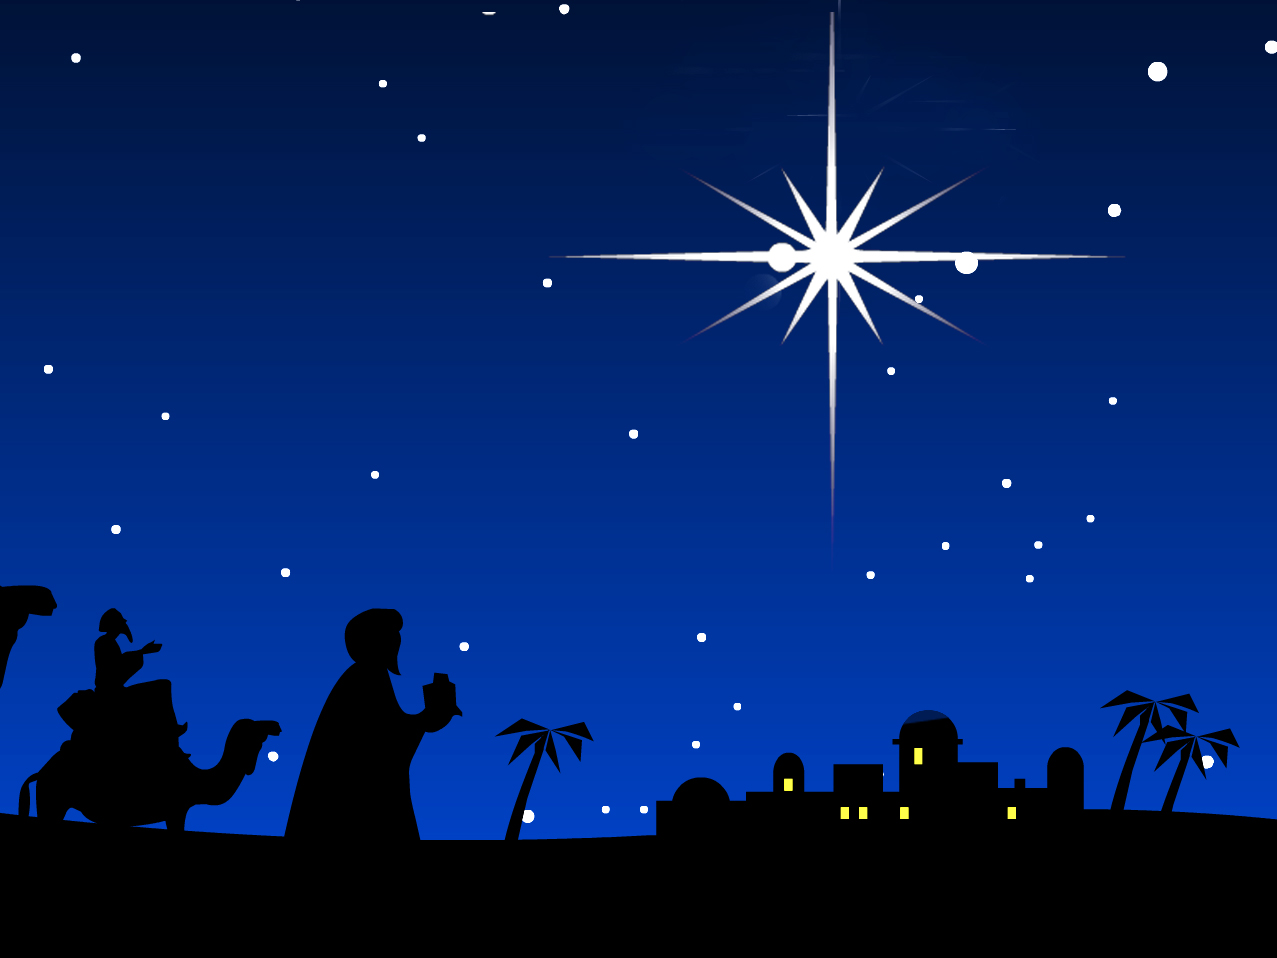 That Christmas \'Star of Wonder\' still leaves plenty to wonder about